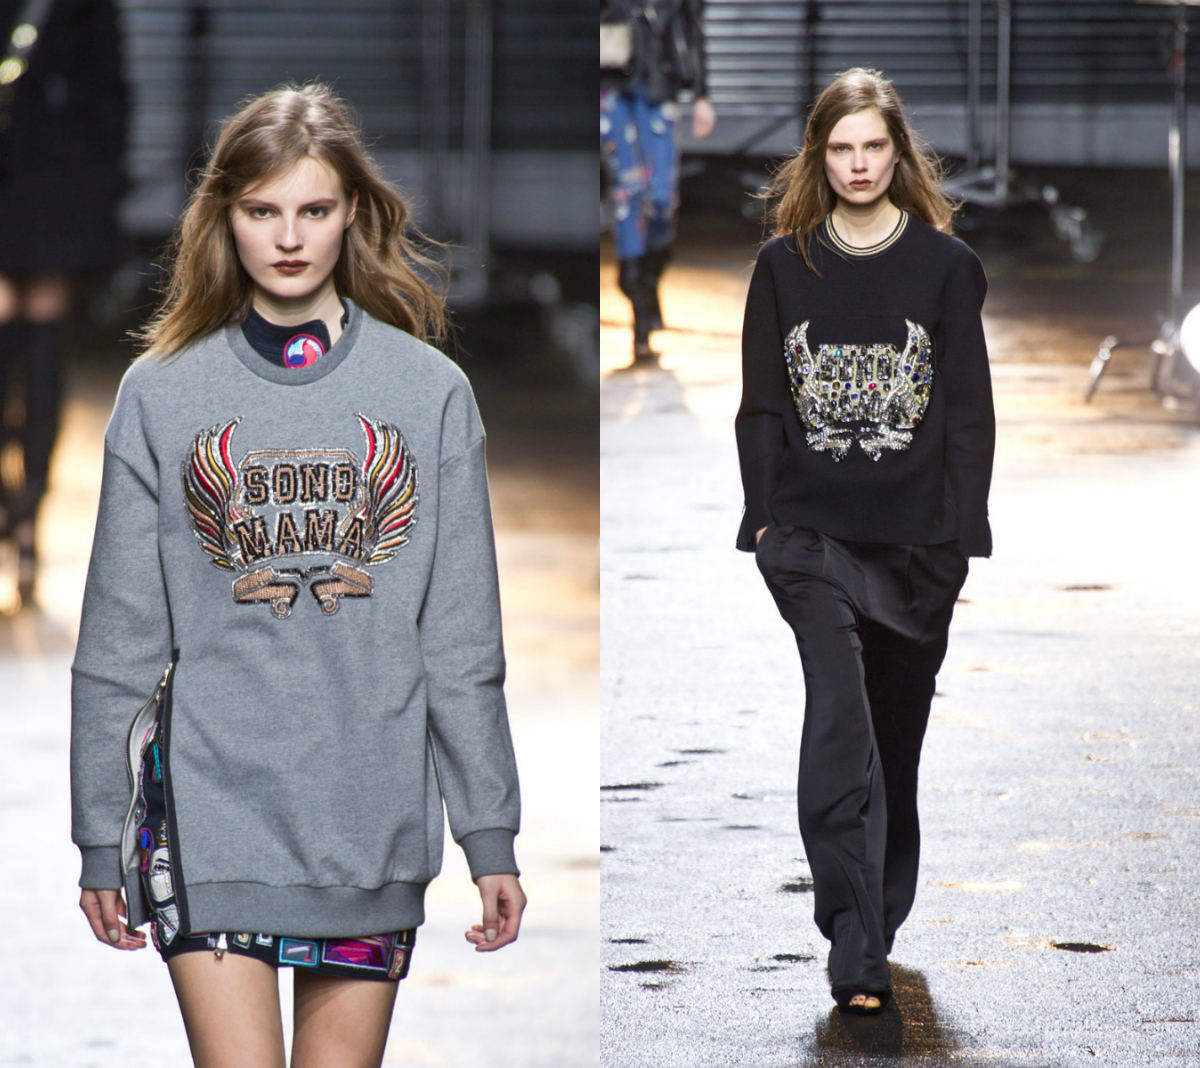 limsweatshirts Love 3.1 Phillip Lims Embellished Sweatshirt? Heres How To DIY Your Own